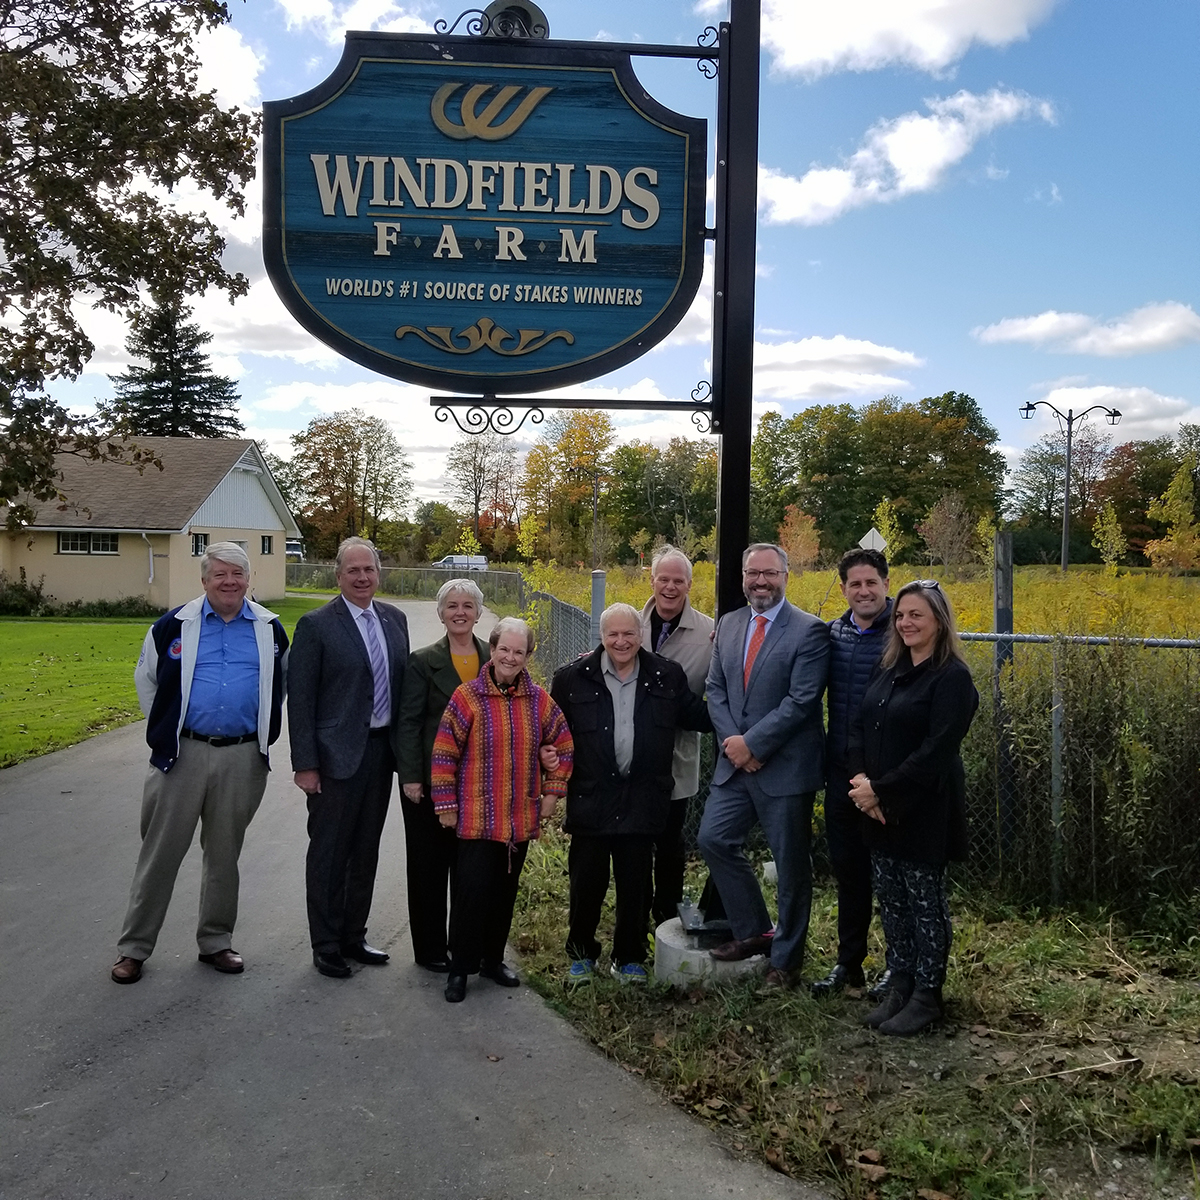 Windfields Farm Sign